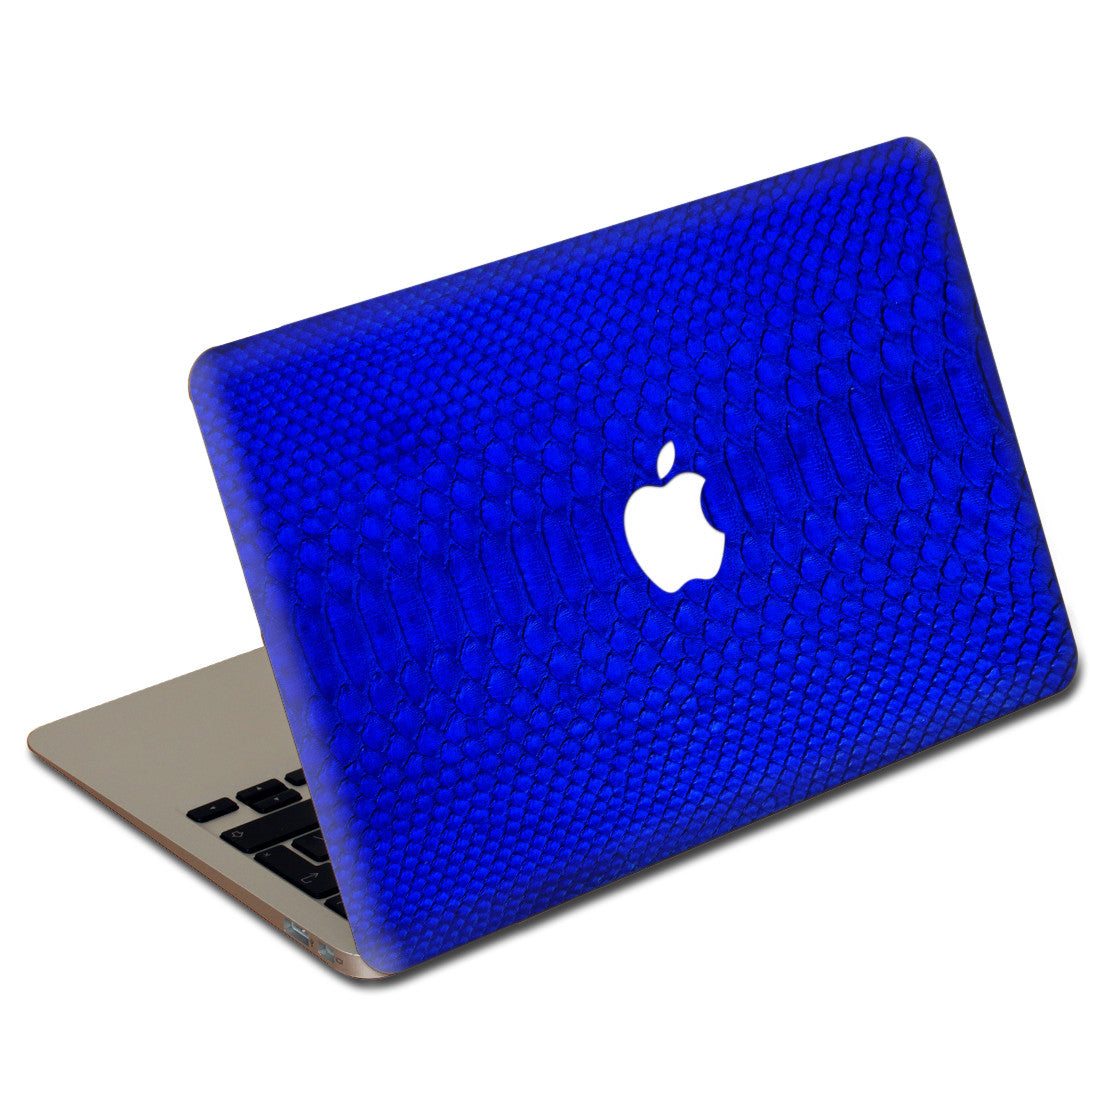 Cobalt Python MacBook Leather Cover